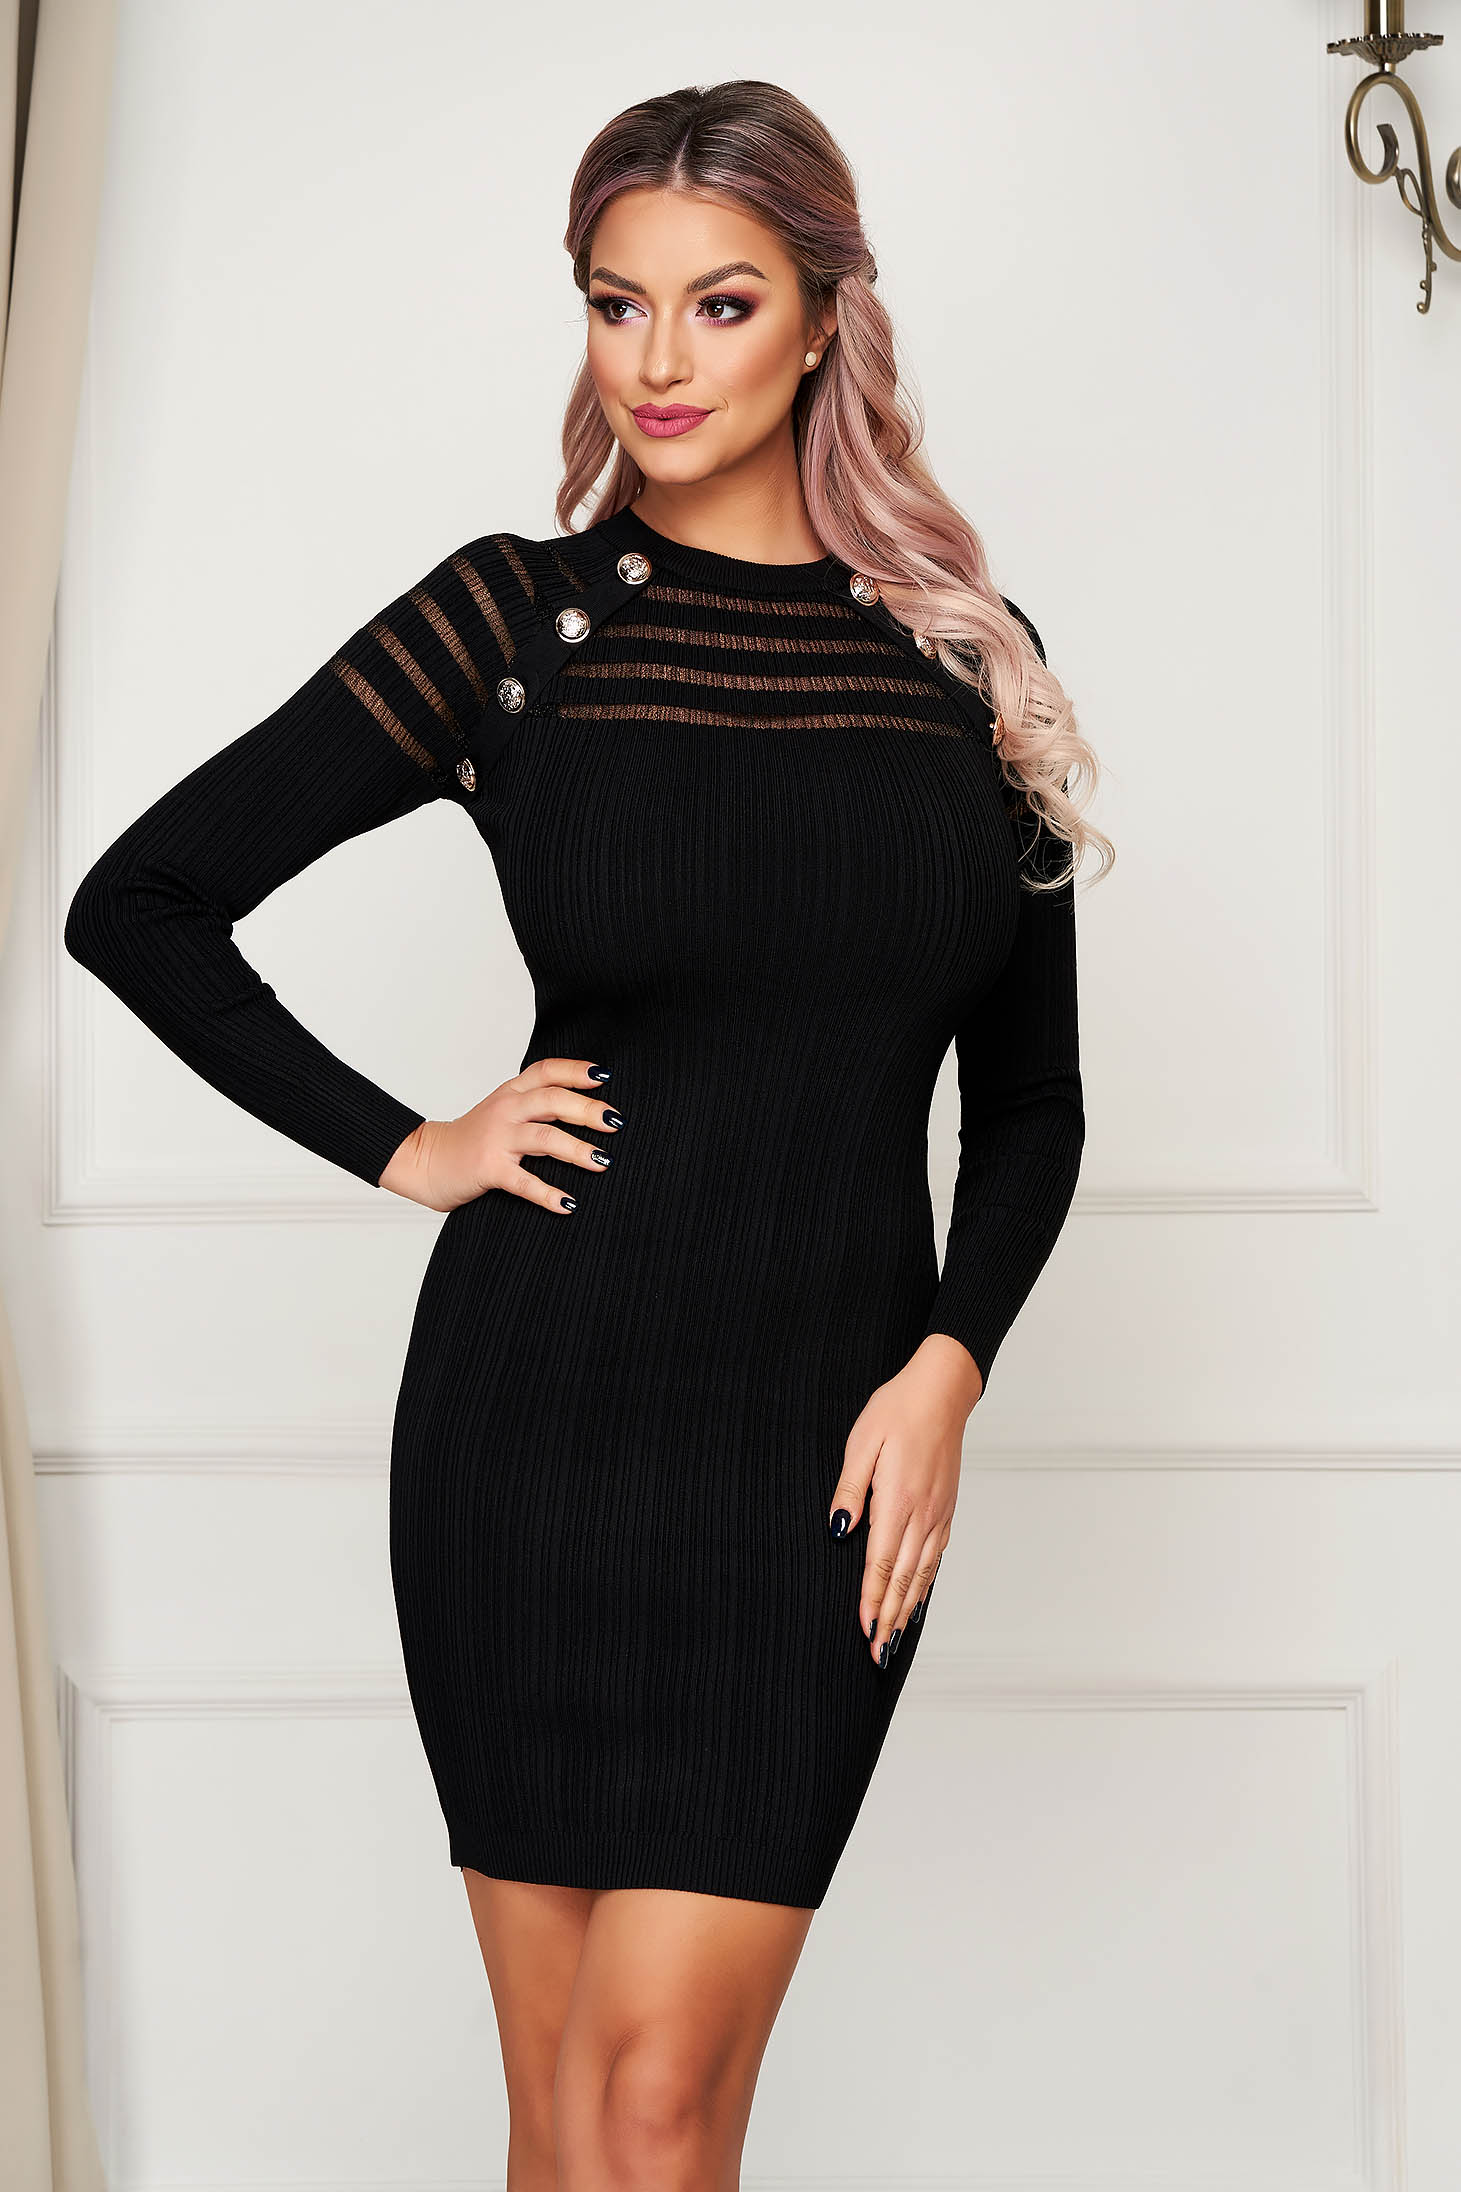 Black dress short cut daily pencil knitted long sleeved